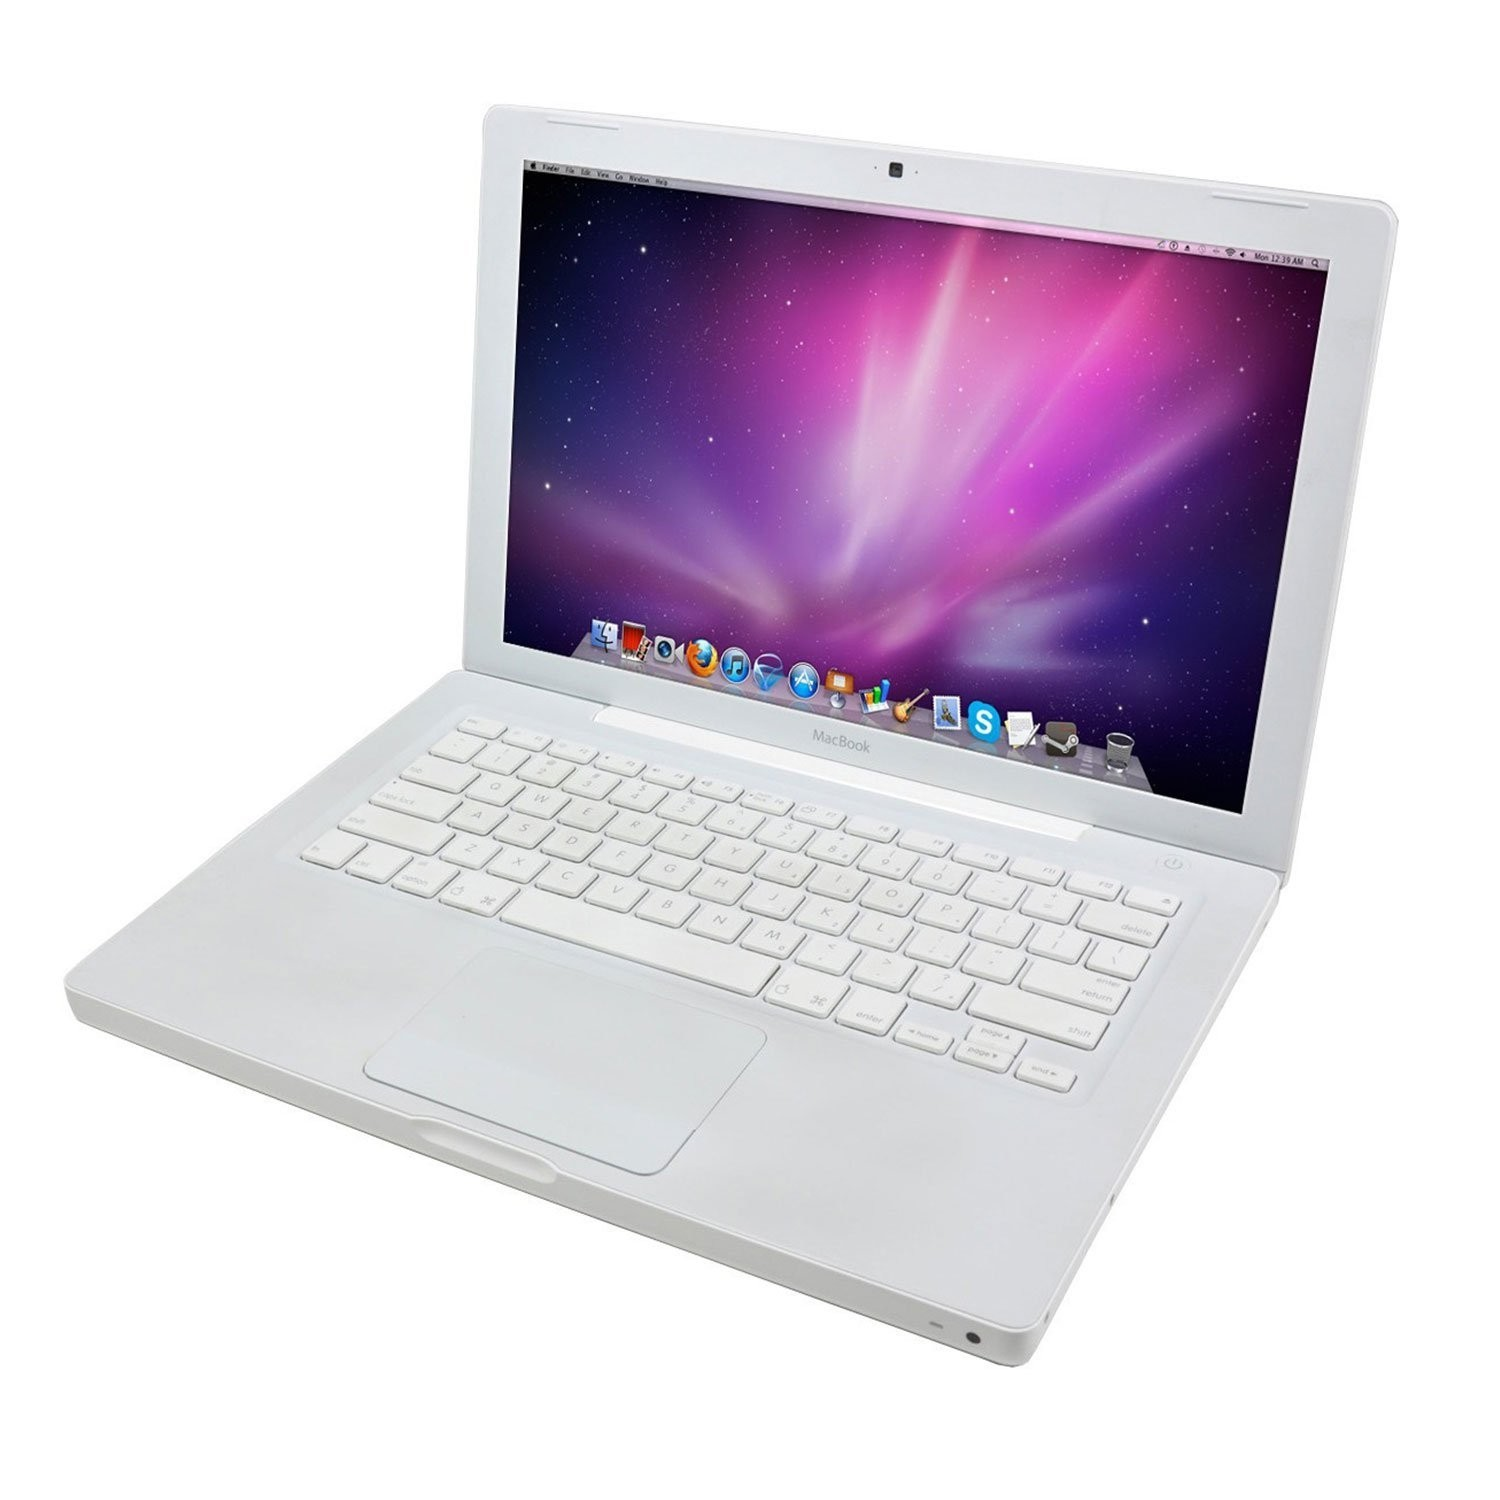 "Buy the Apple MacBook A1181 White - 13.3"" at MicroDream.co.uk"